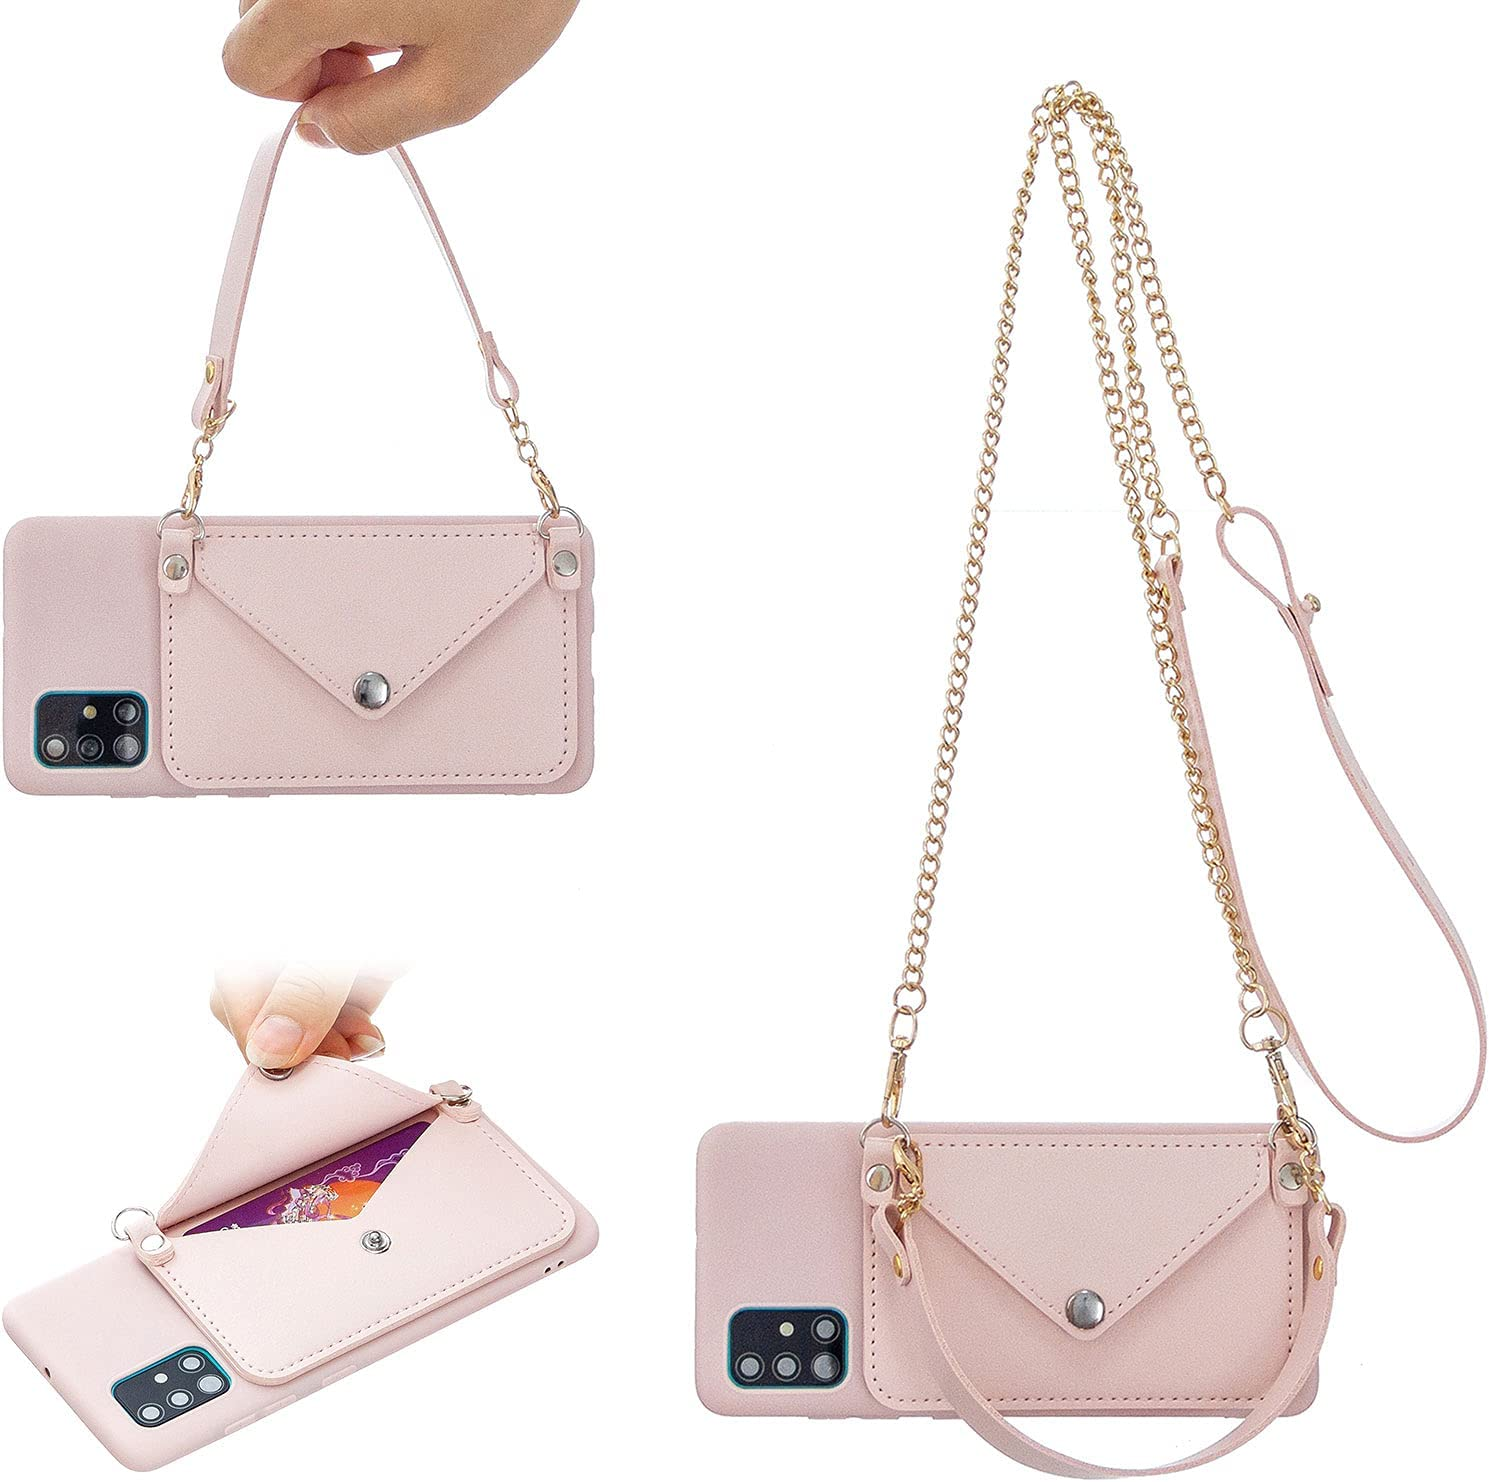 Girlyard for Samsung Galaxy A42 5G Case with Card Holder and Lanyard, Soft TPU Silicone Wallet Phone Case with Wrist Strap and Crossbody Shoulder Chain Strap Purse Cover for Women Girls - Pink